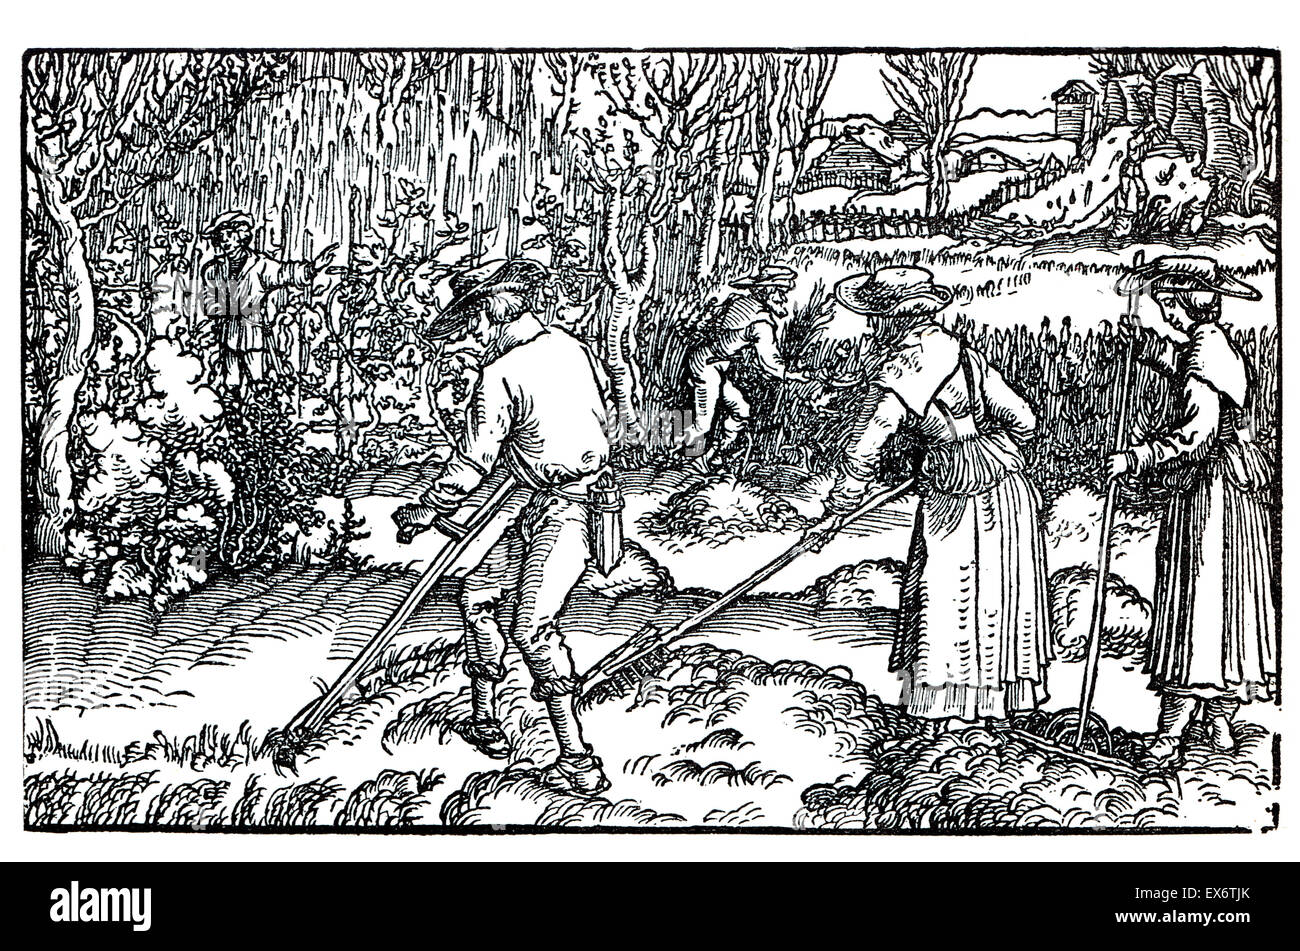 16th century farming, 1582 woodcut illustration by Hans Burgmair (Burgkmair)